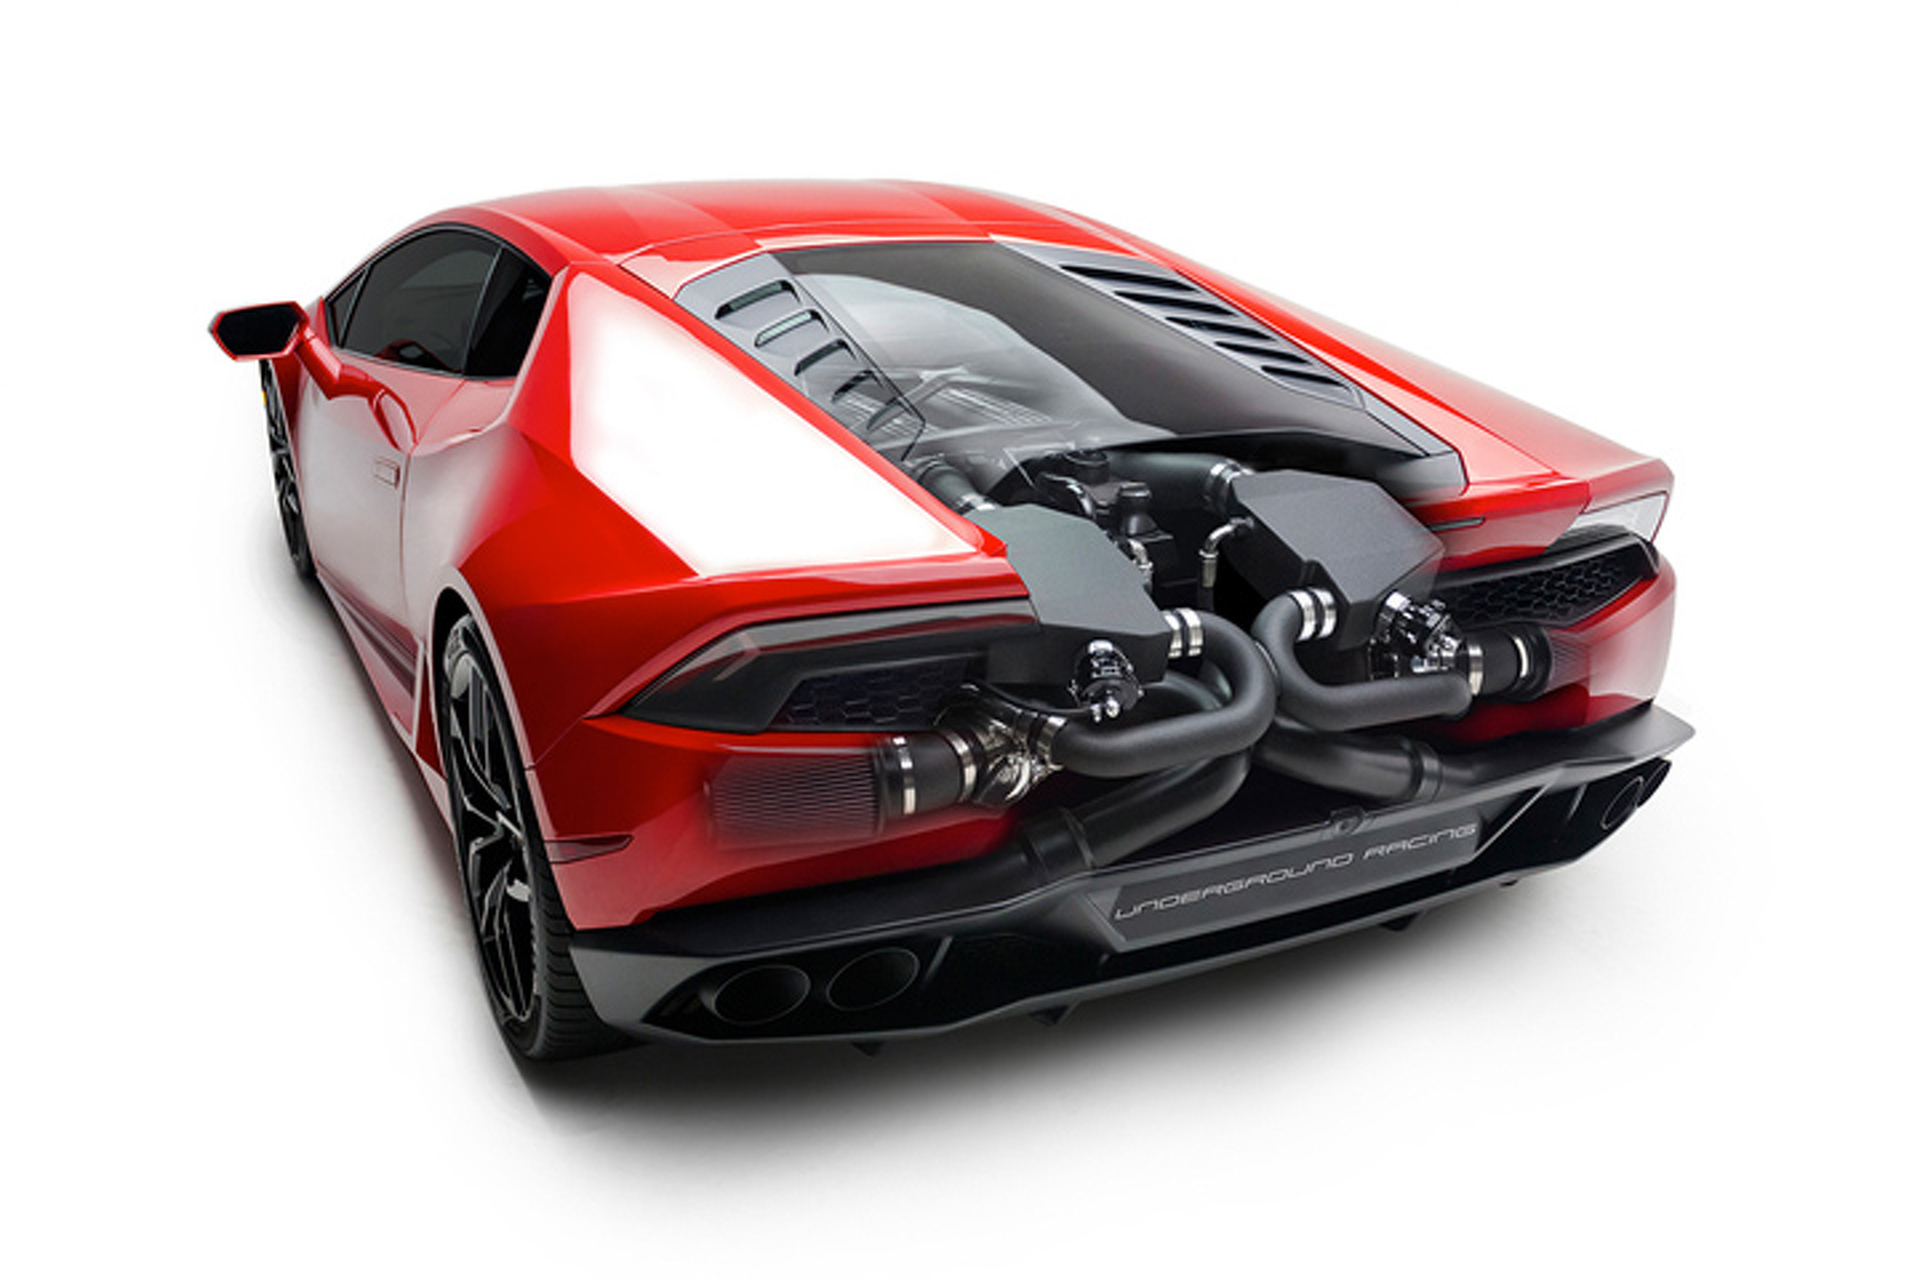 Lamborghini Huracan Twin Turbo Kit Has Lots of Horsepower